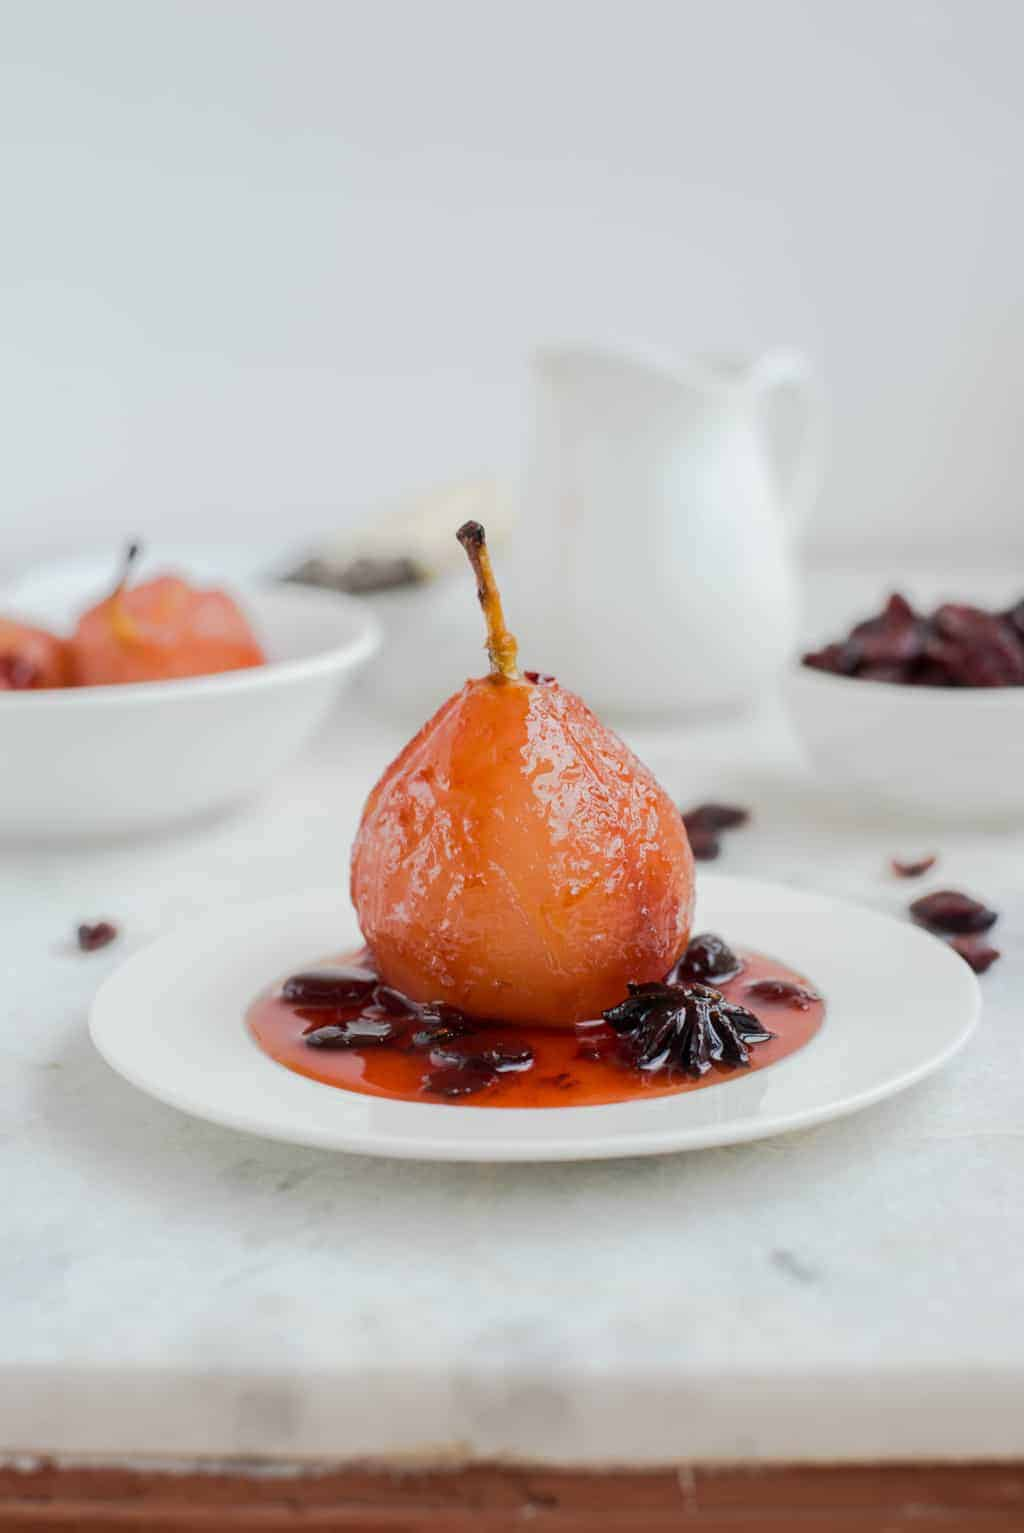 Pears poached in spiced cranberry juice recipe the for Spiced cranberry sauce with orange and star anise